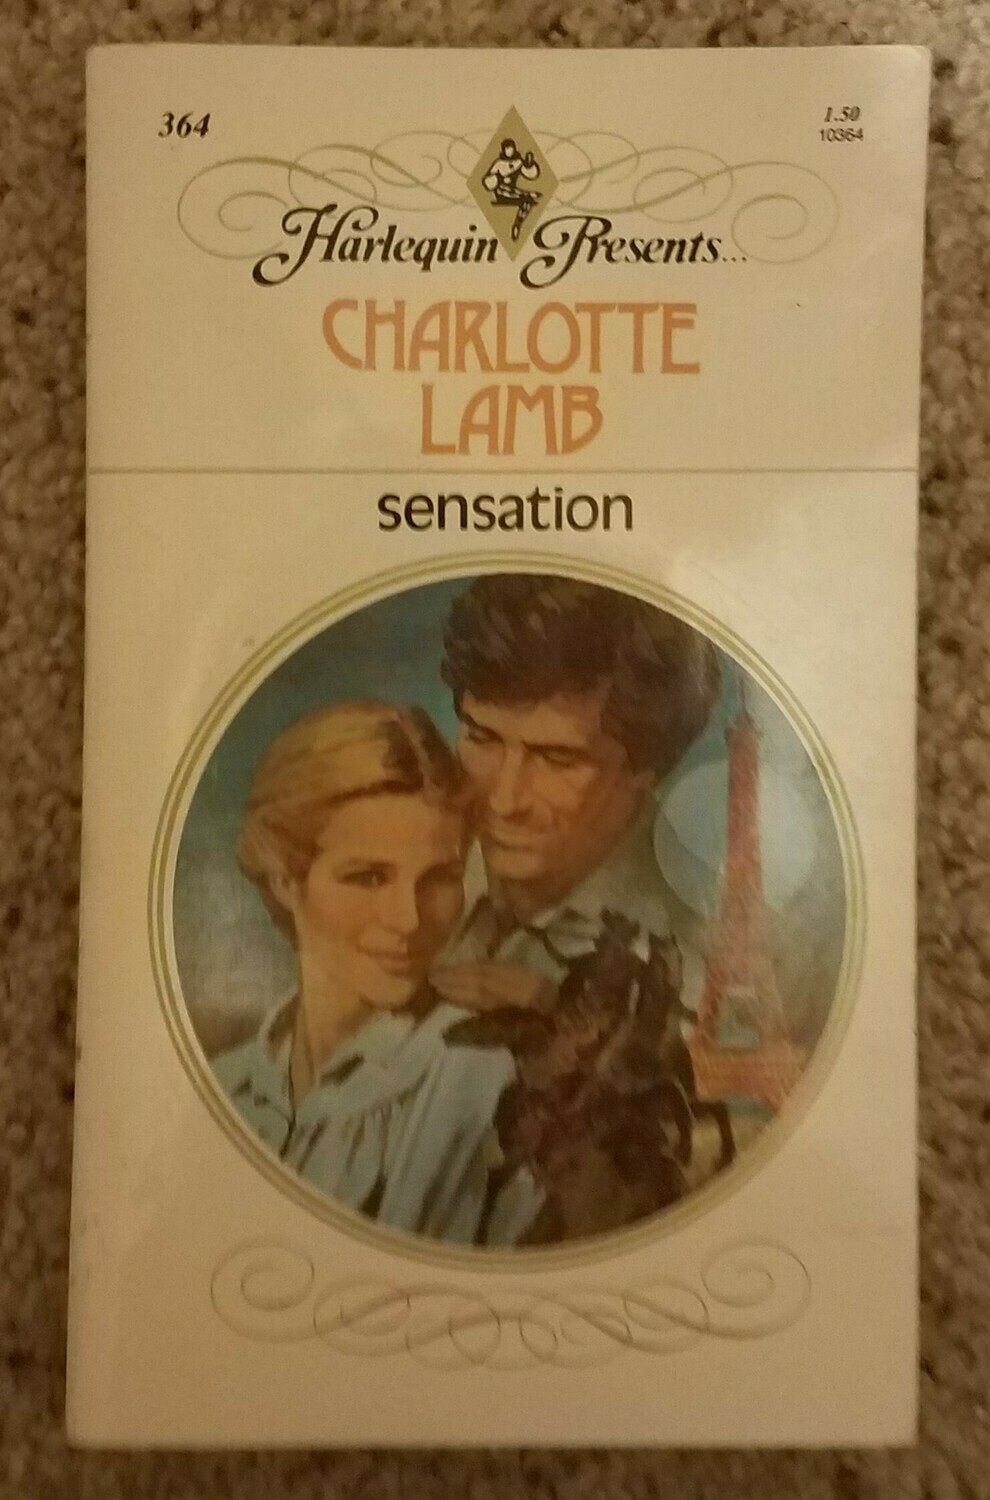 Sensation by Charlotte Lamb